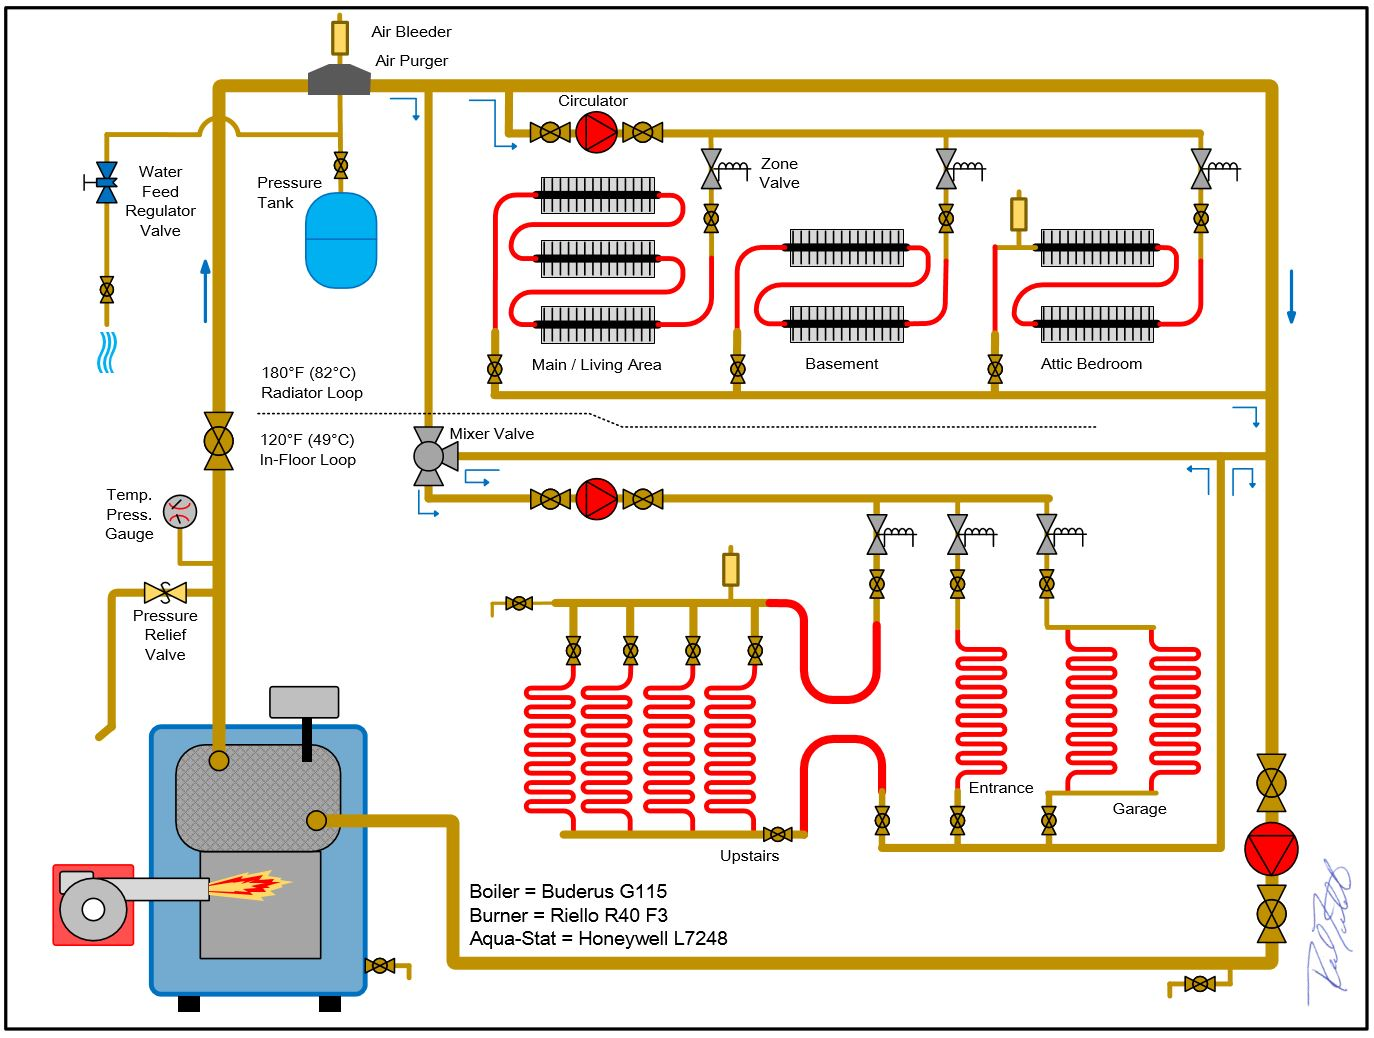 Piping Diagram Radiant Floor Heat | Wiring Diagram on